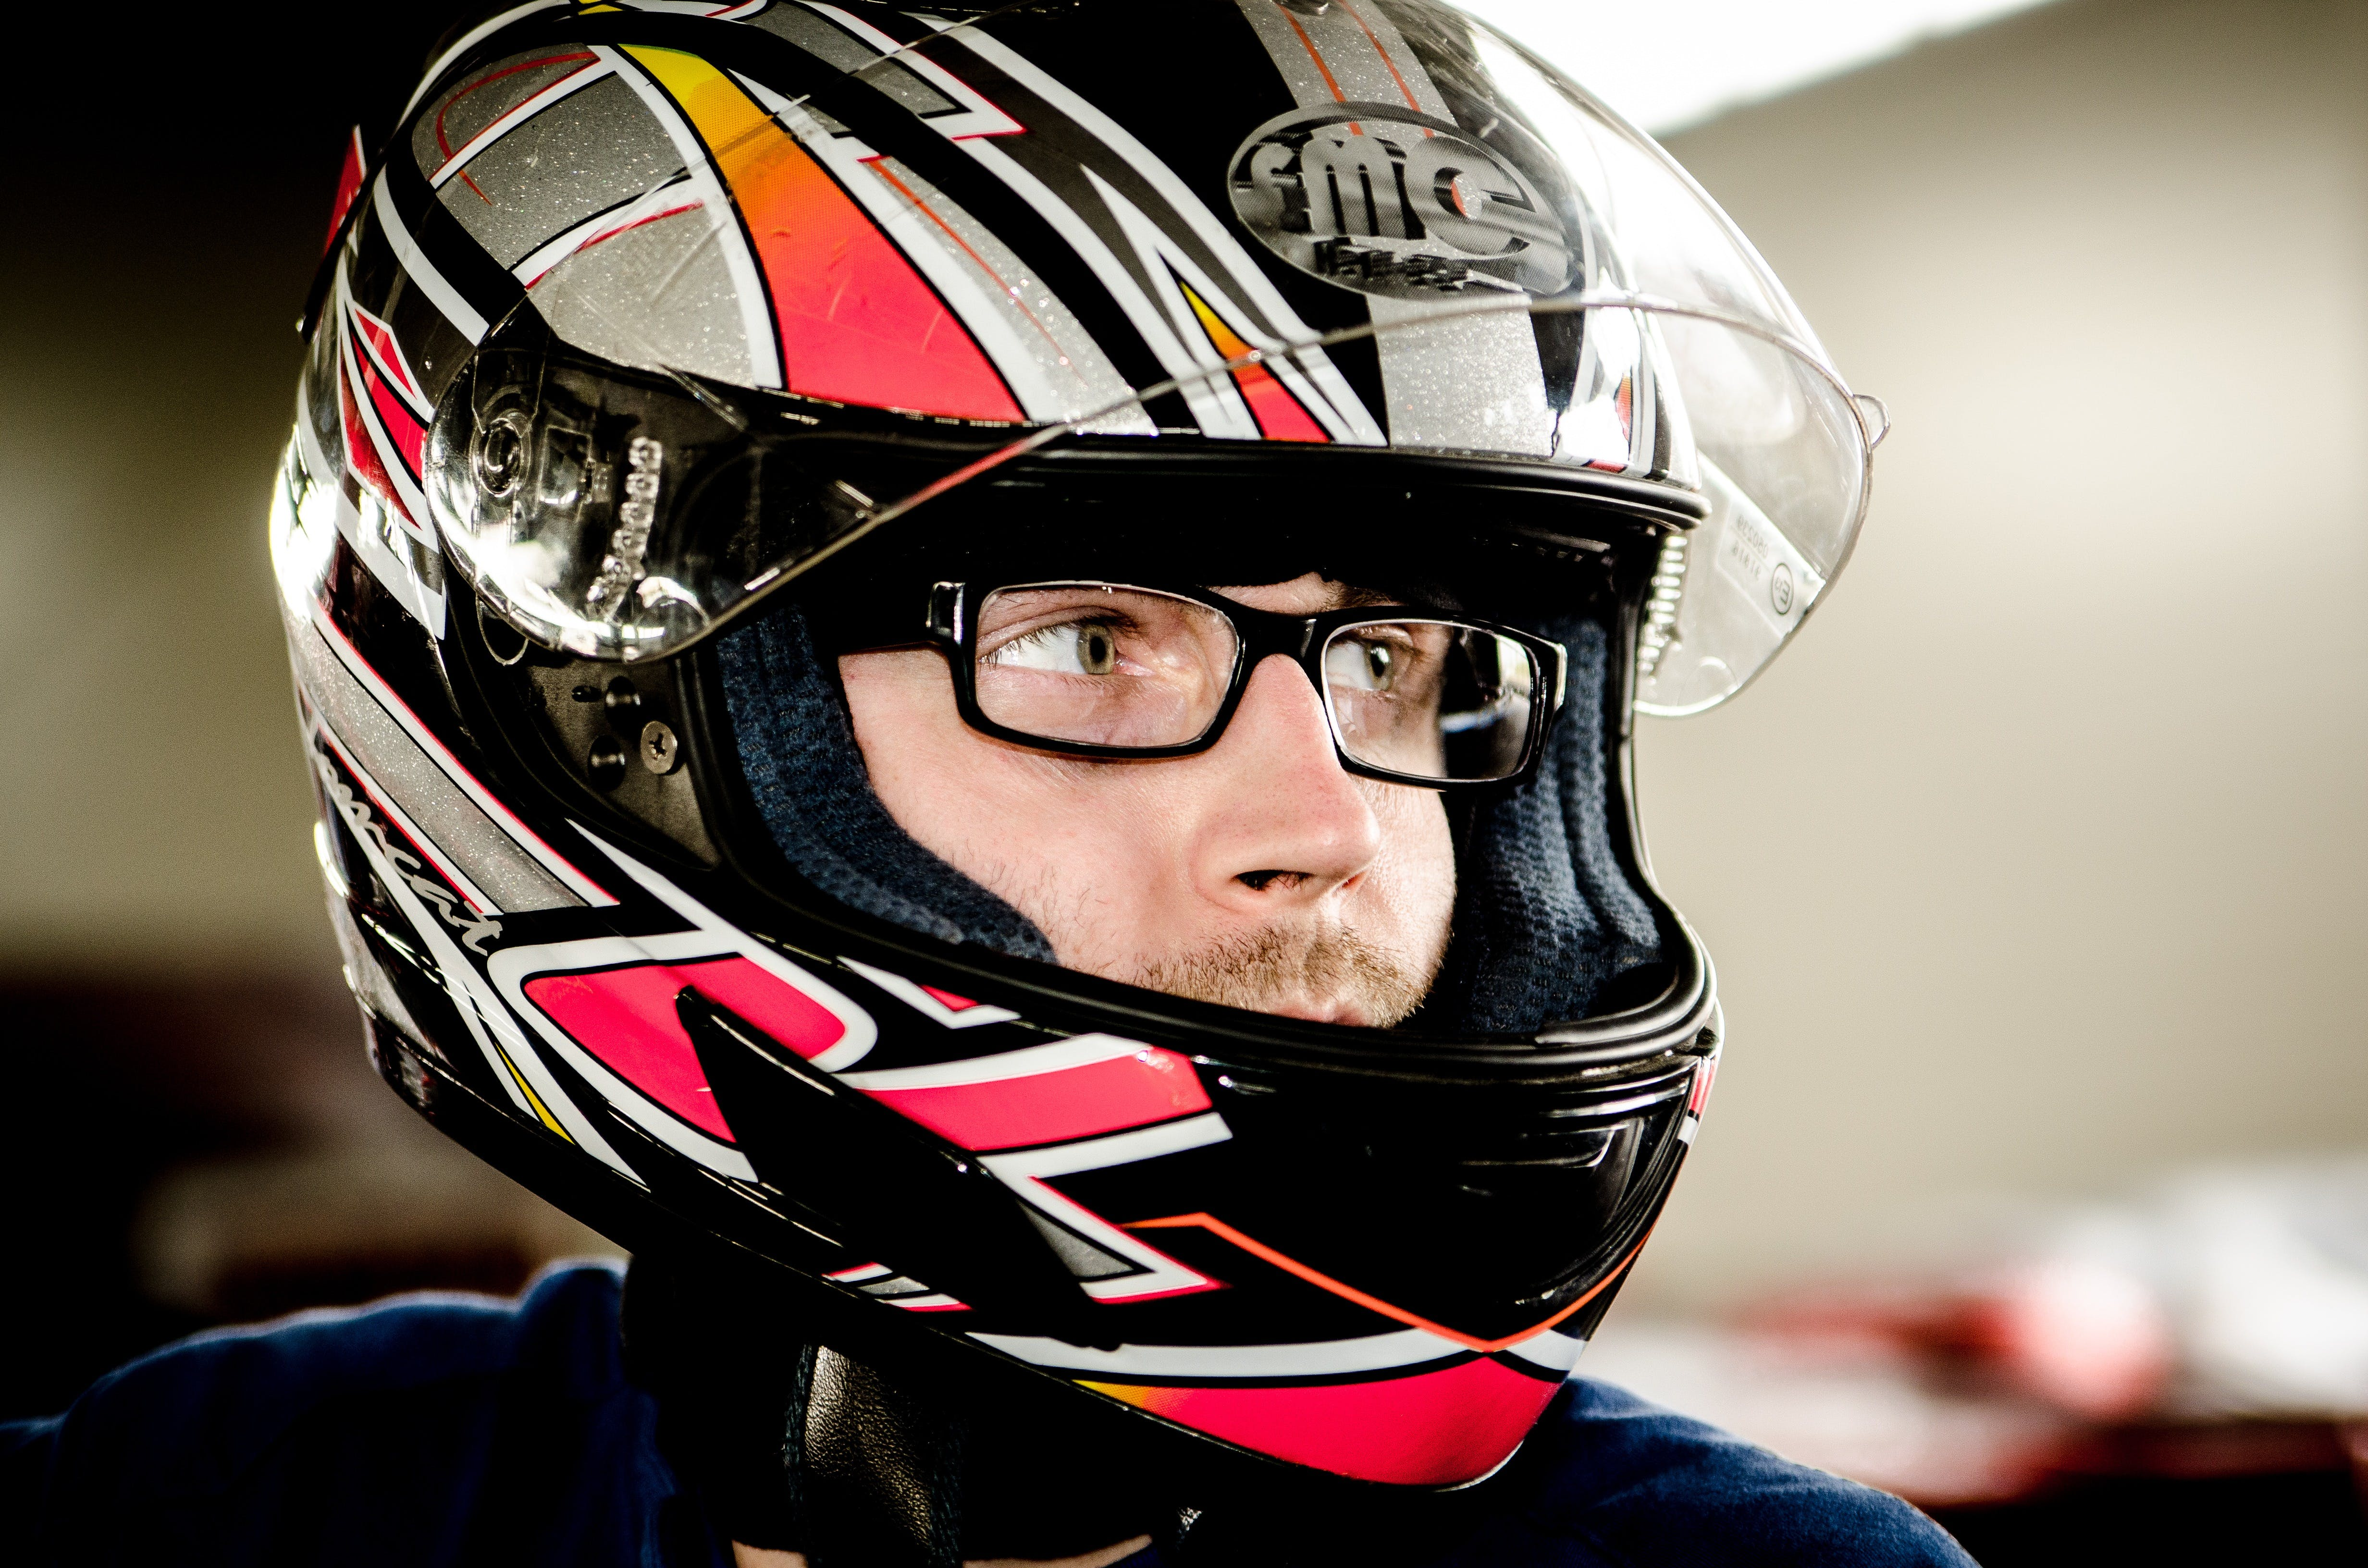 Man Wearing Gray, Red, and Black Full-face Helmet